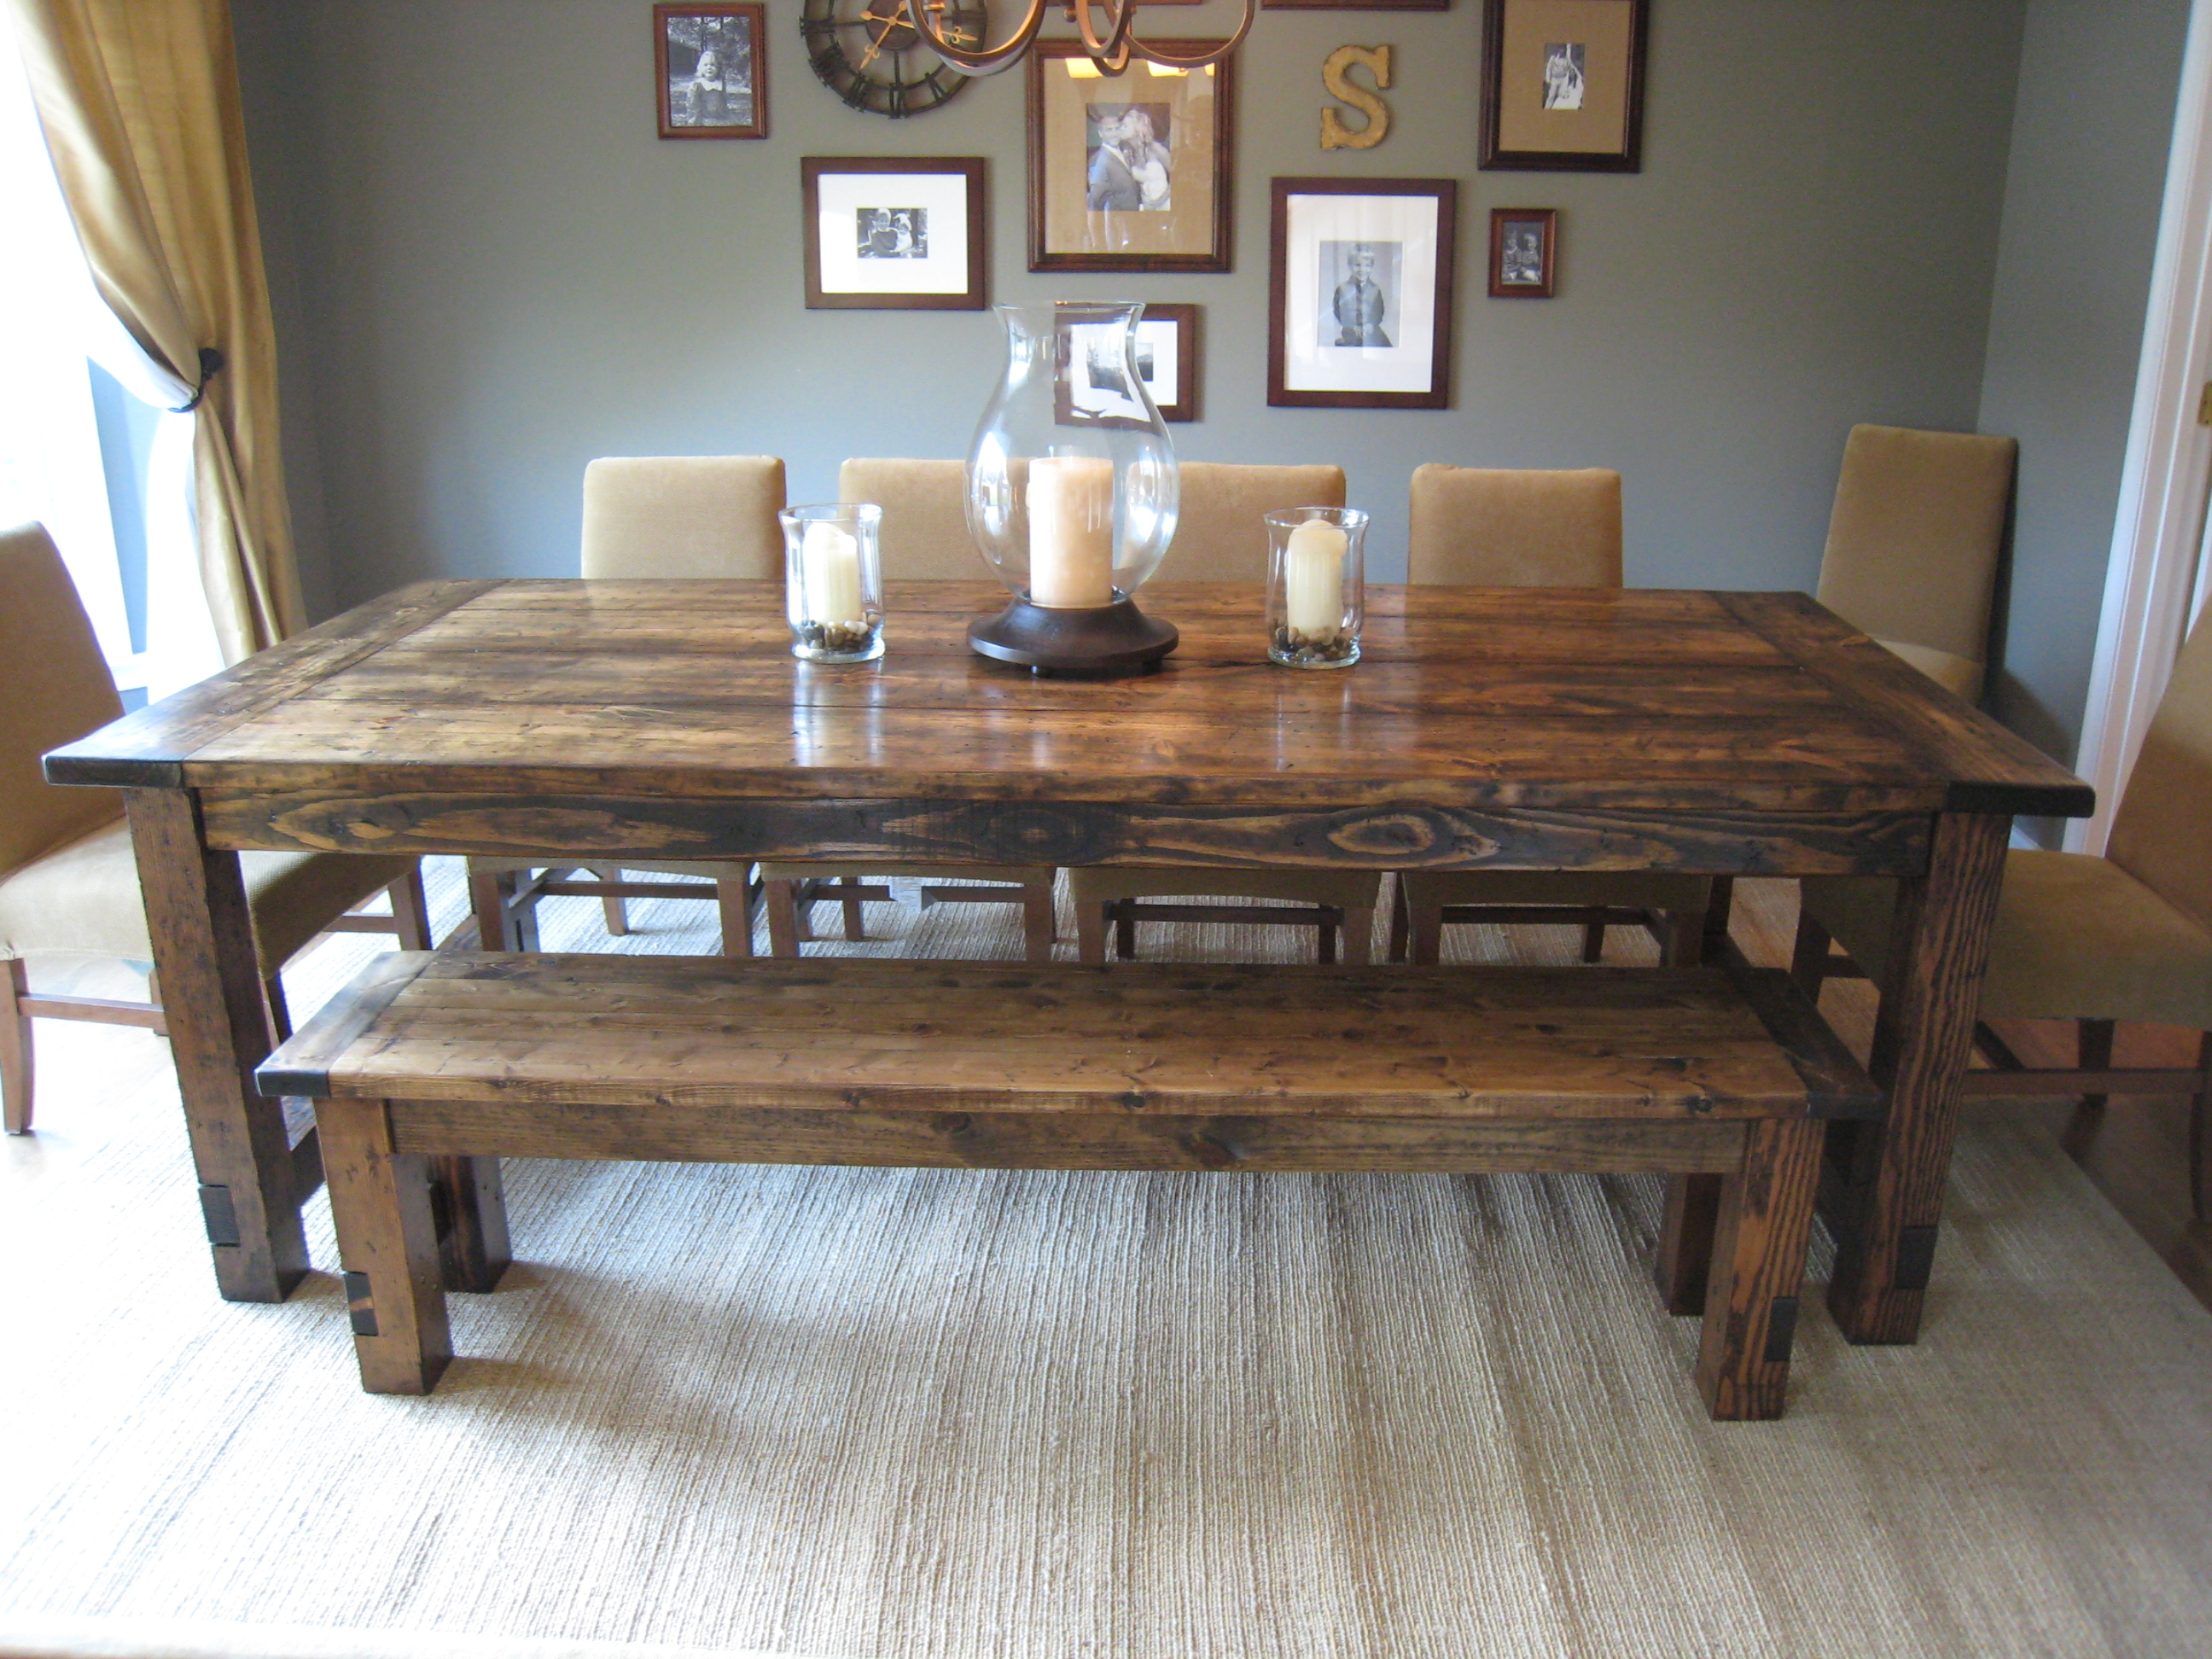 new pictures of the table along with our new slipcovered parson chairs